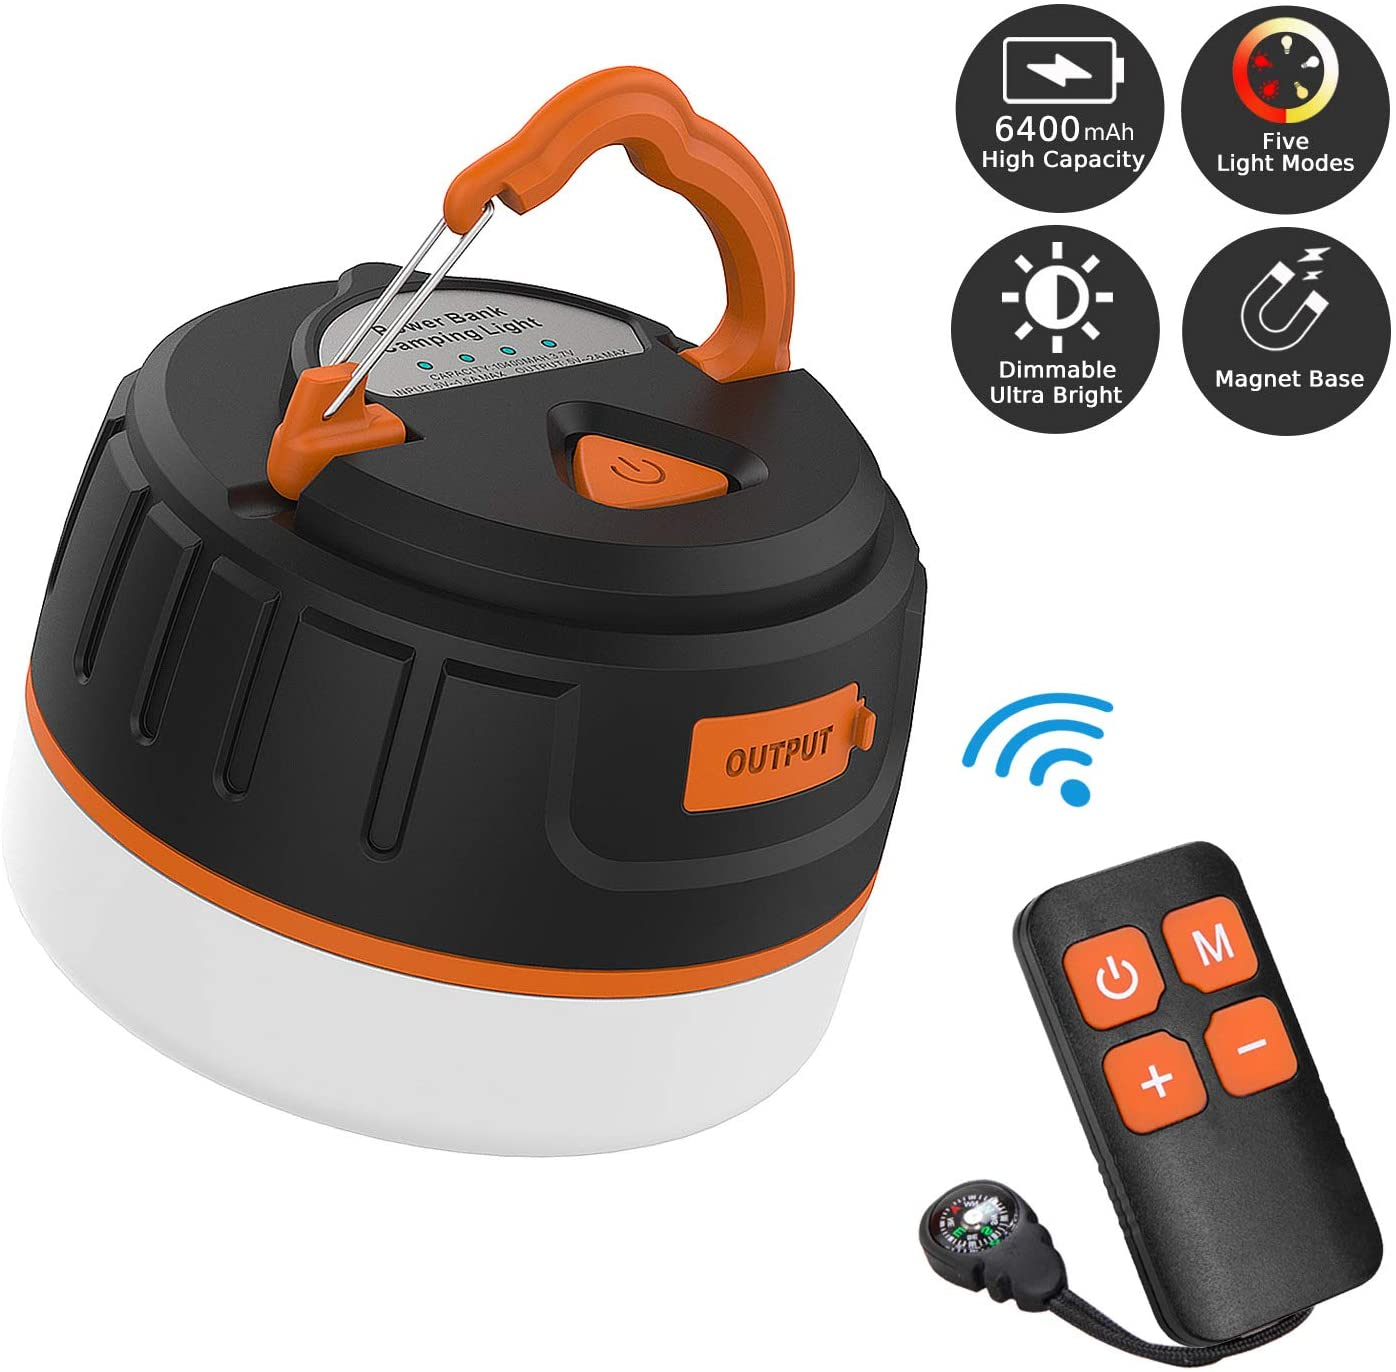 Sinvitron Portable Outdoor LED Camping Lantern Rechargeable, Power Bank 6400mAh, Camping Flashlight Tent Lights- Remote, Waterproof, Magnet Base, 5 Light Mode for Emergency Hurricane Outage Hiking